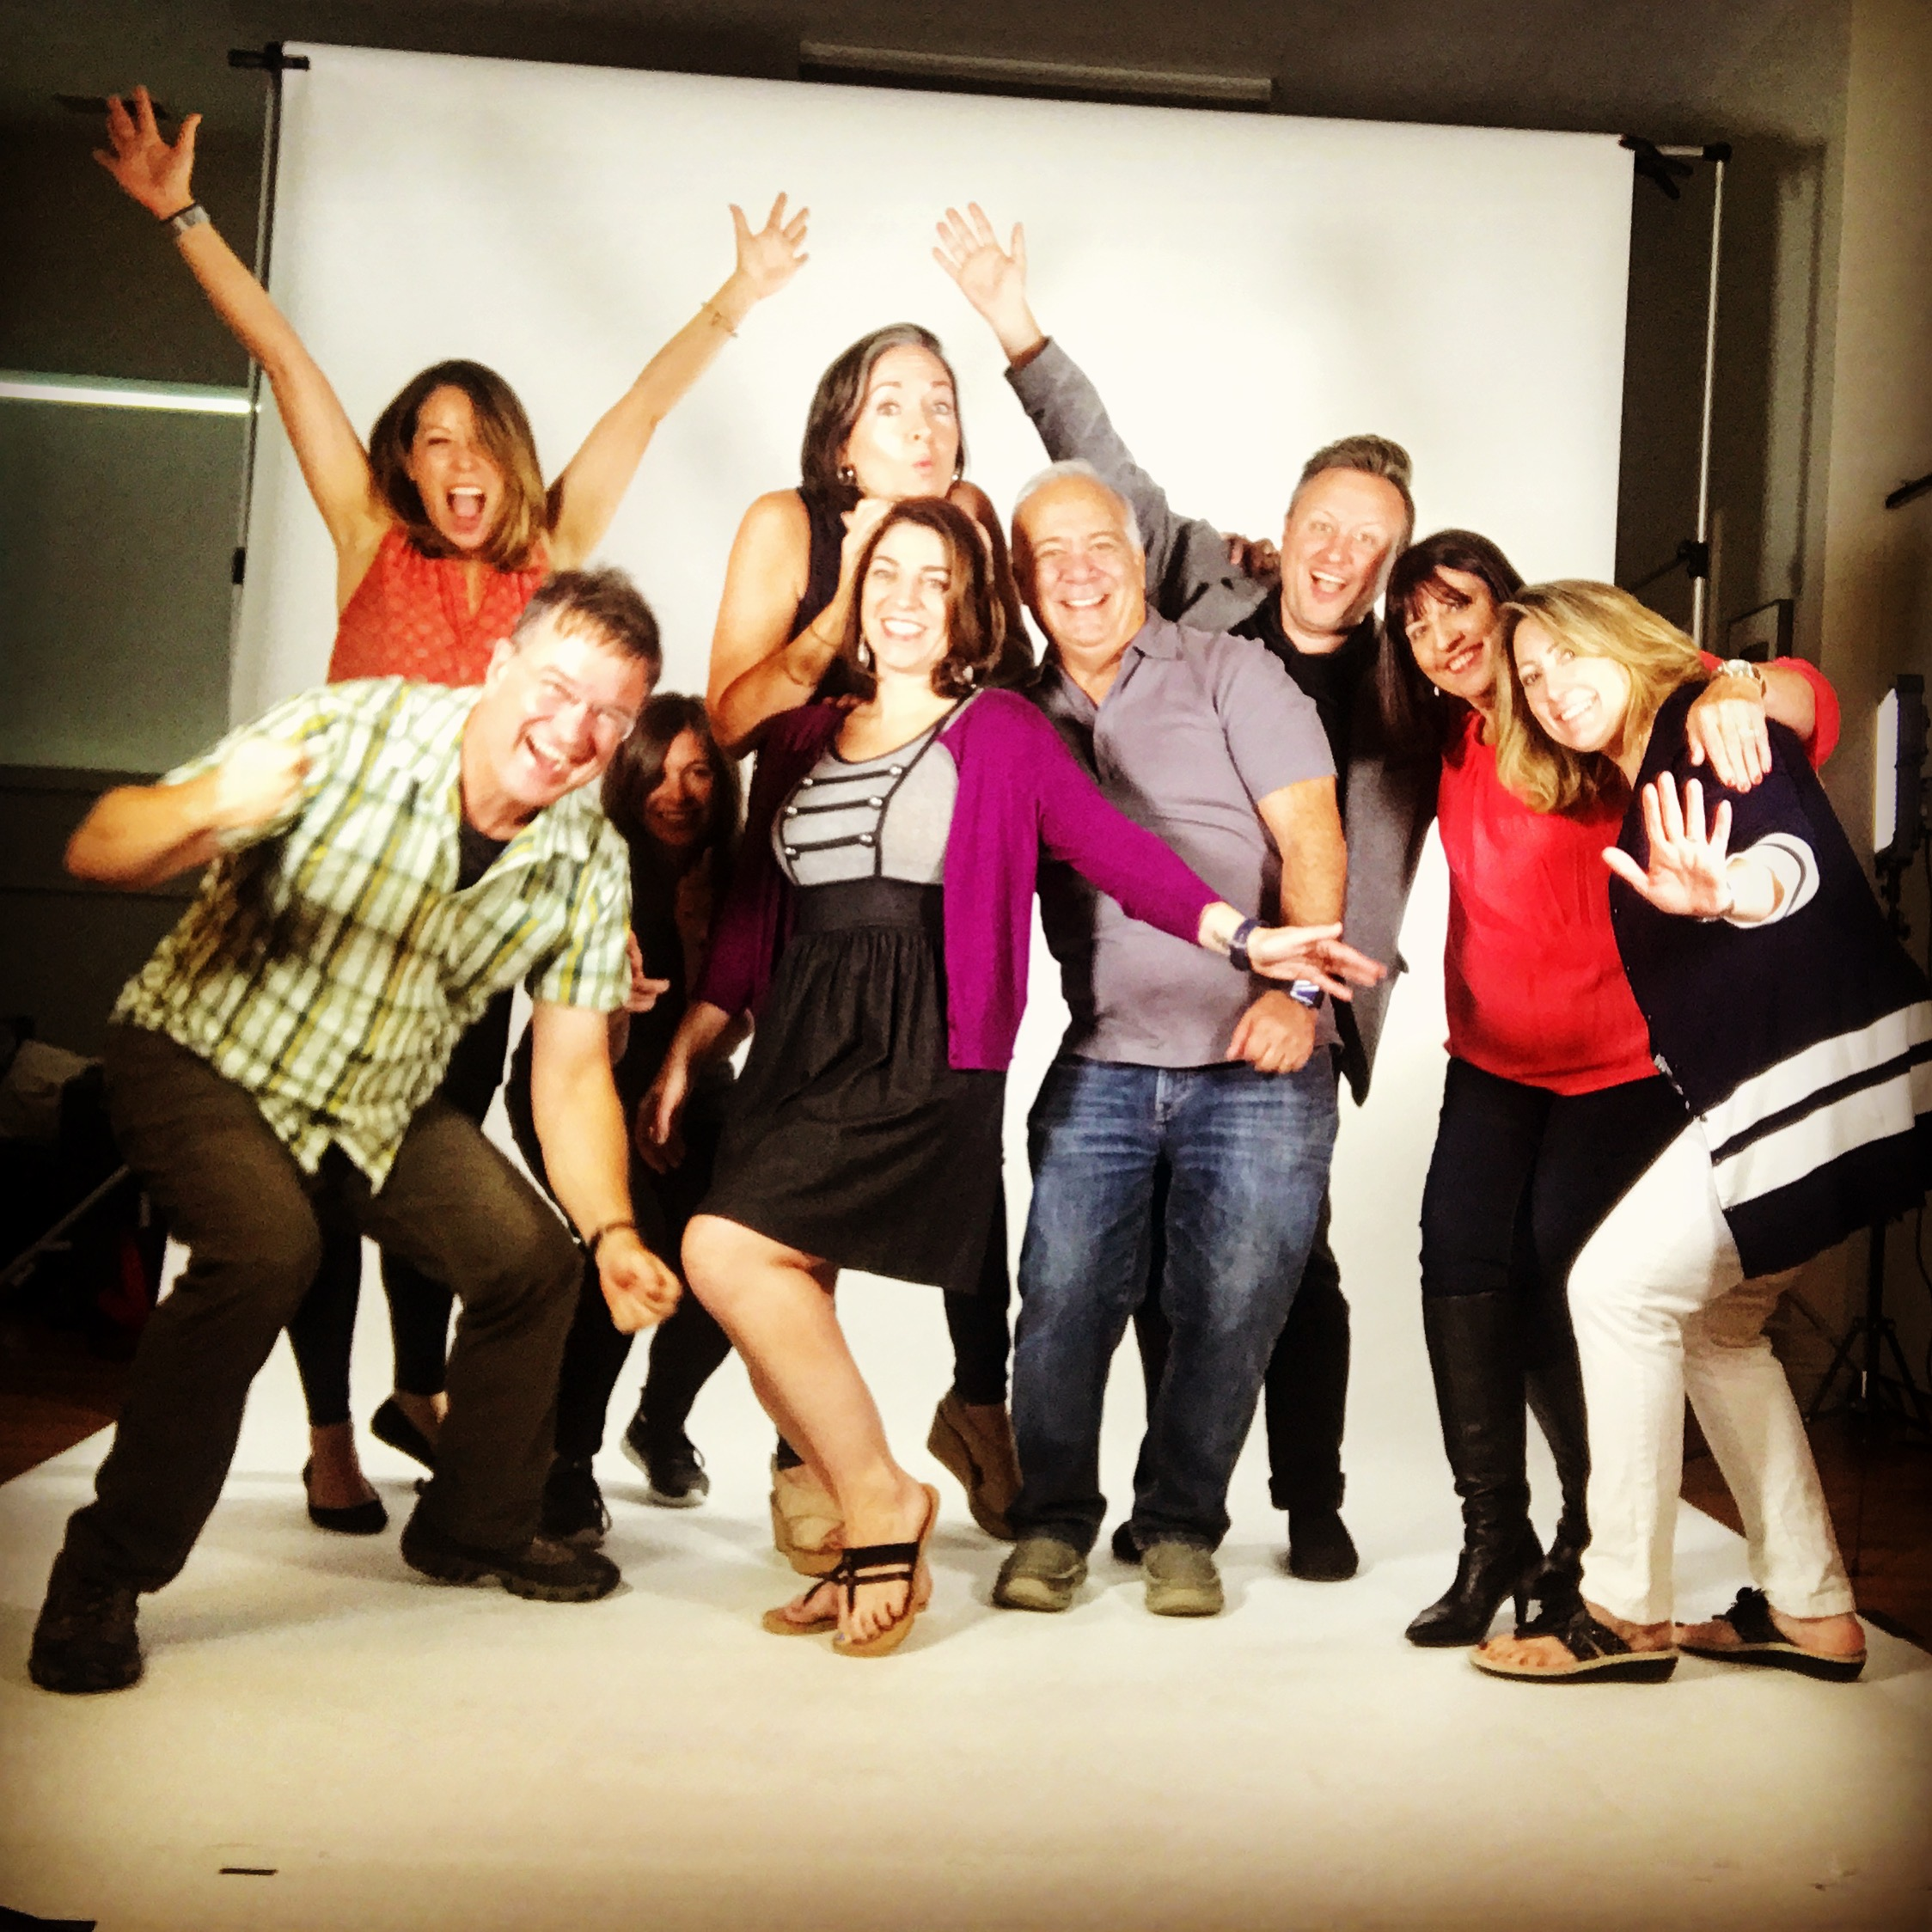 In a studio for a commercial photography project with lots of people on set, squeeze in and celebrate!